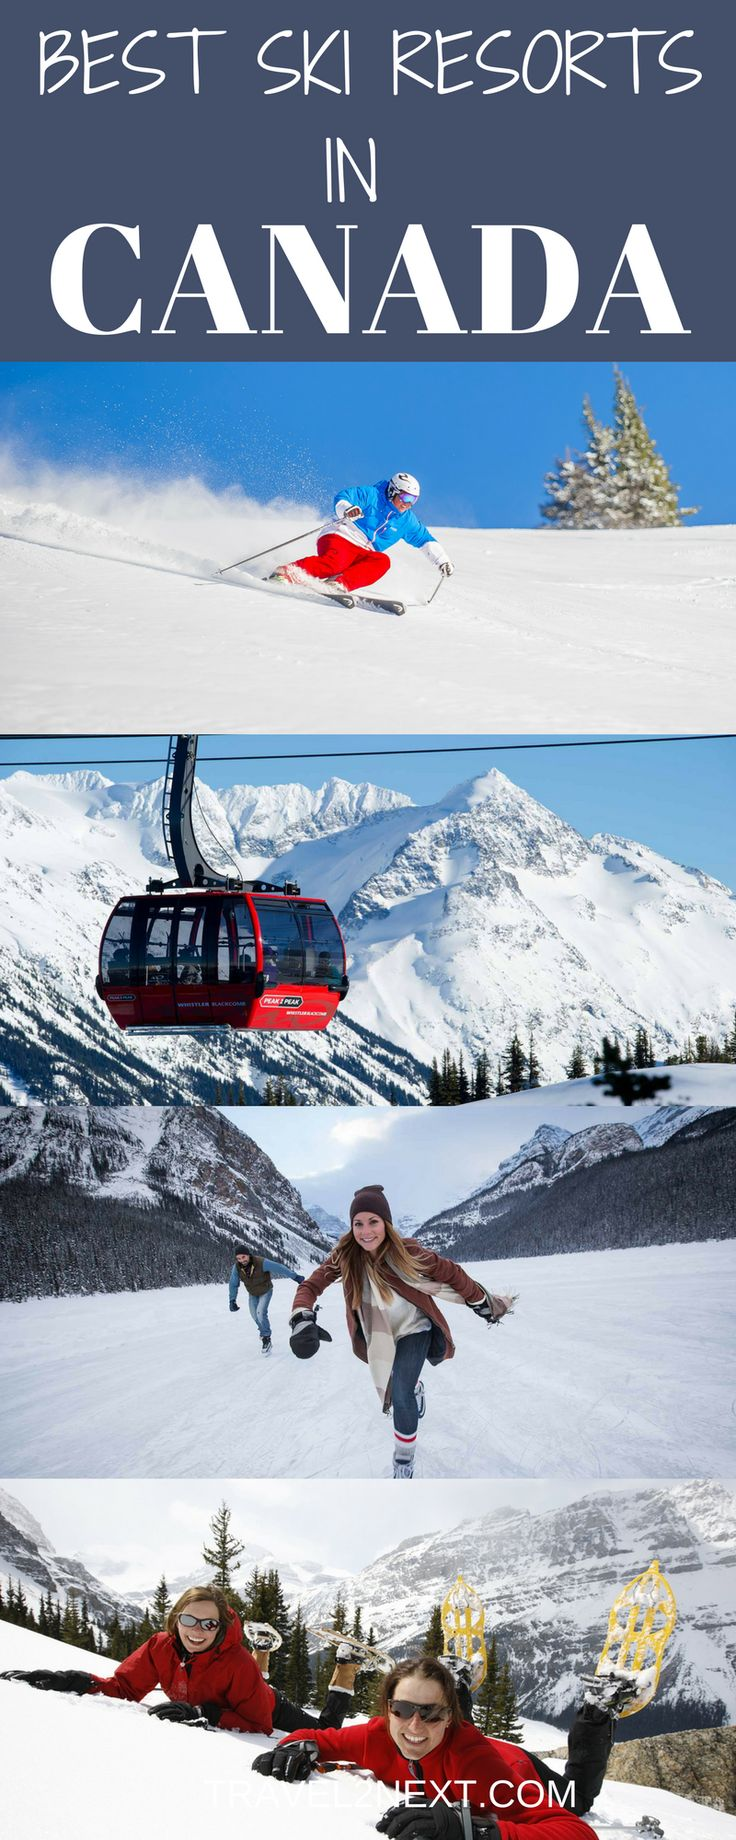 Skiing in Canada | Best Ski Resorts in Canada | Ski Canada. Canada is enormously attractive to skiers and snowboarders.